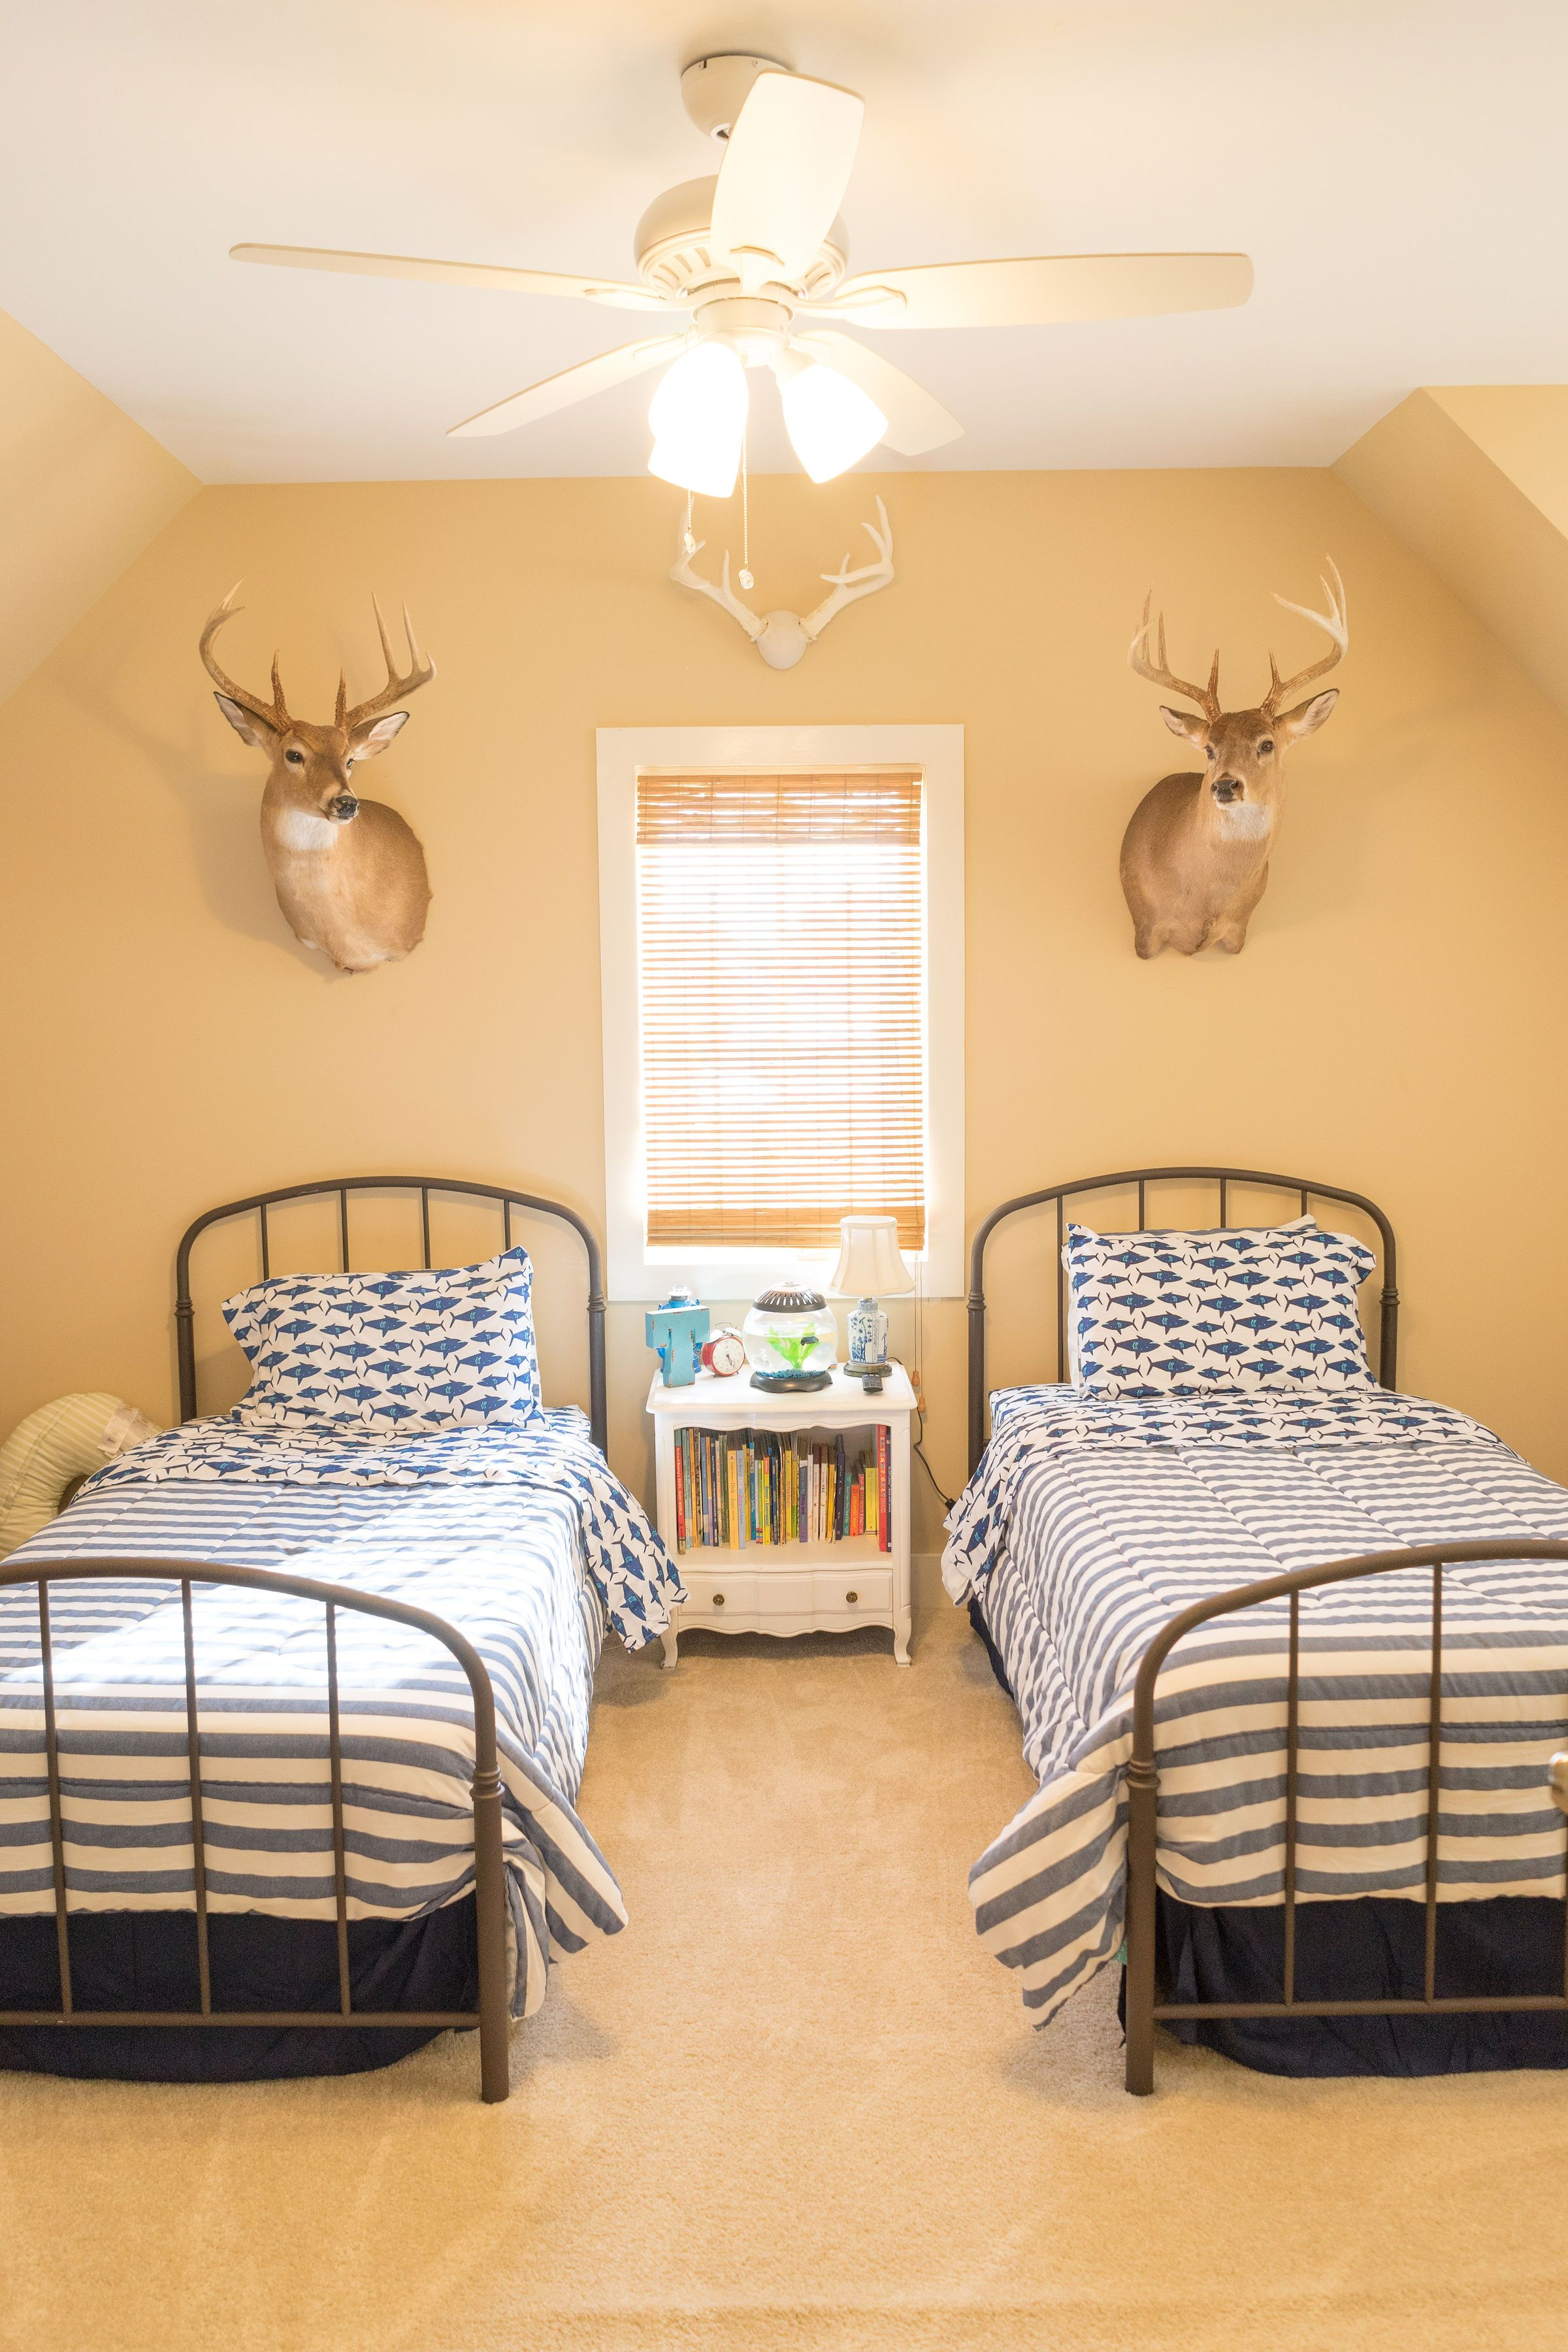 Boy room inspiration iron twin beds. Iron twin bed